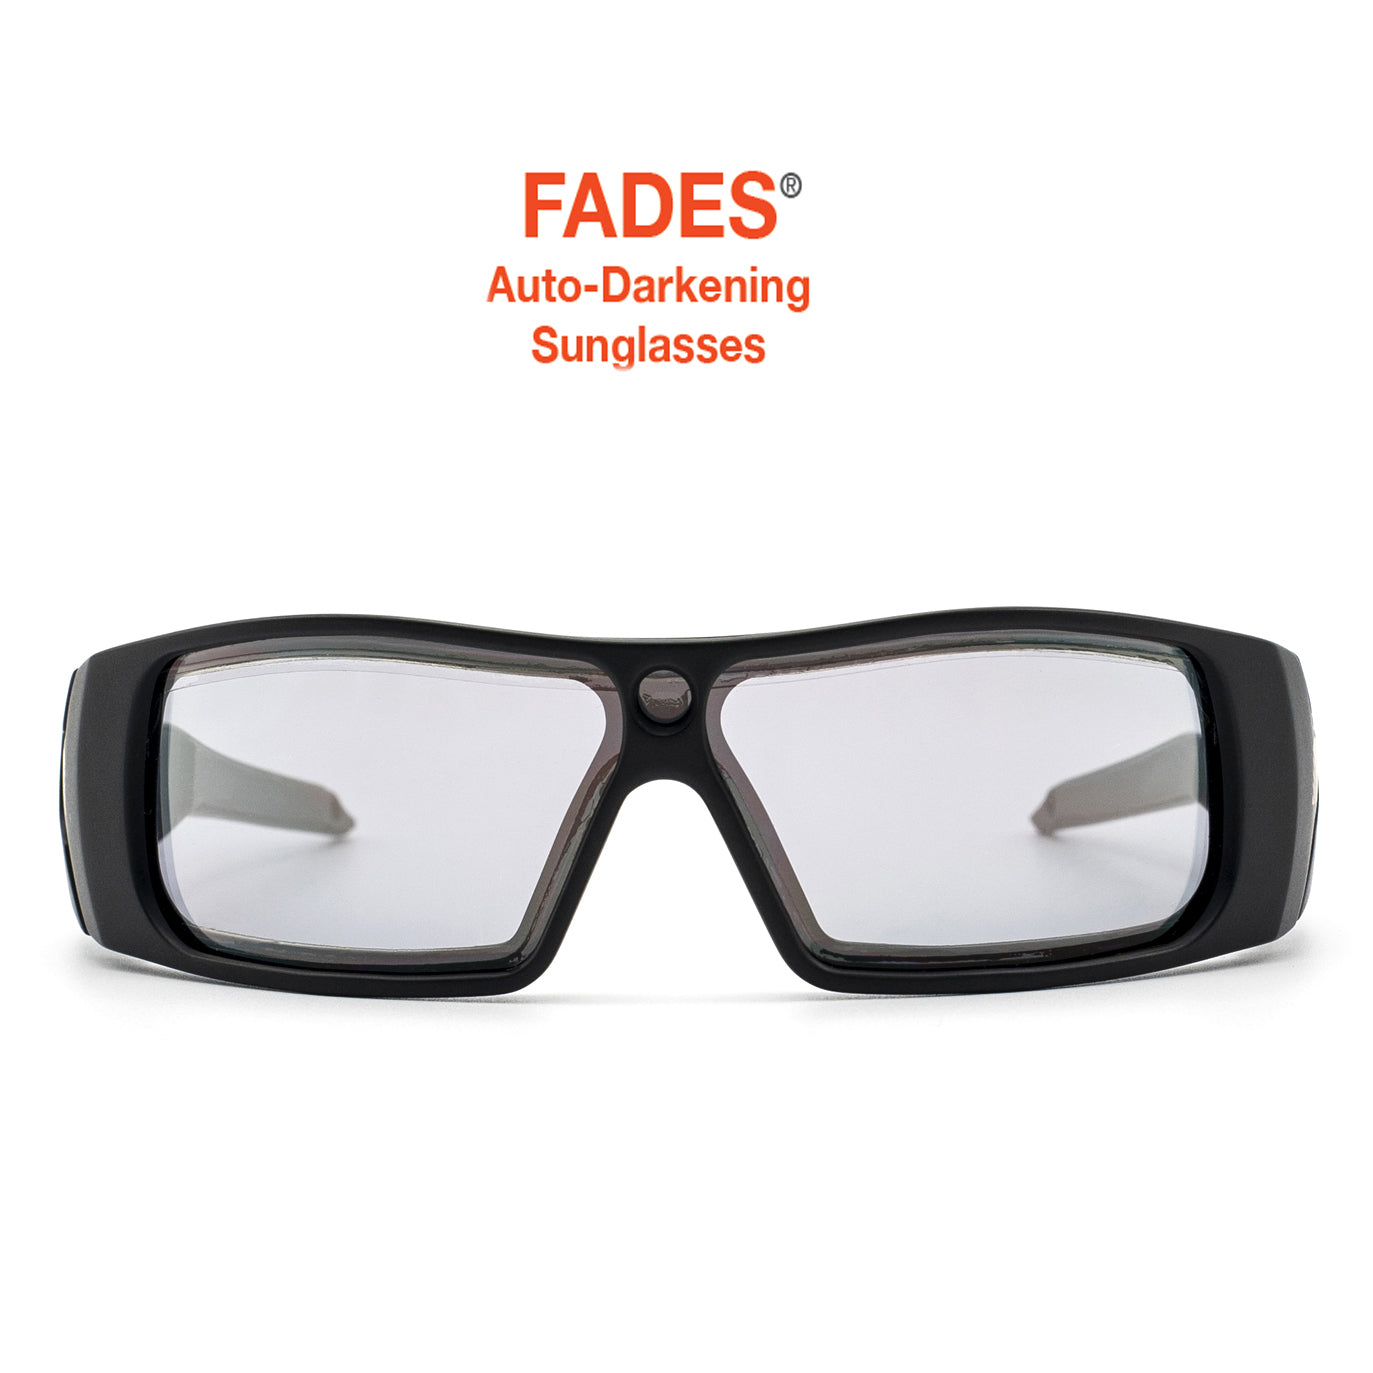 Fades Professional Golf Sunglasses